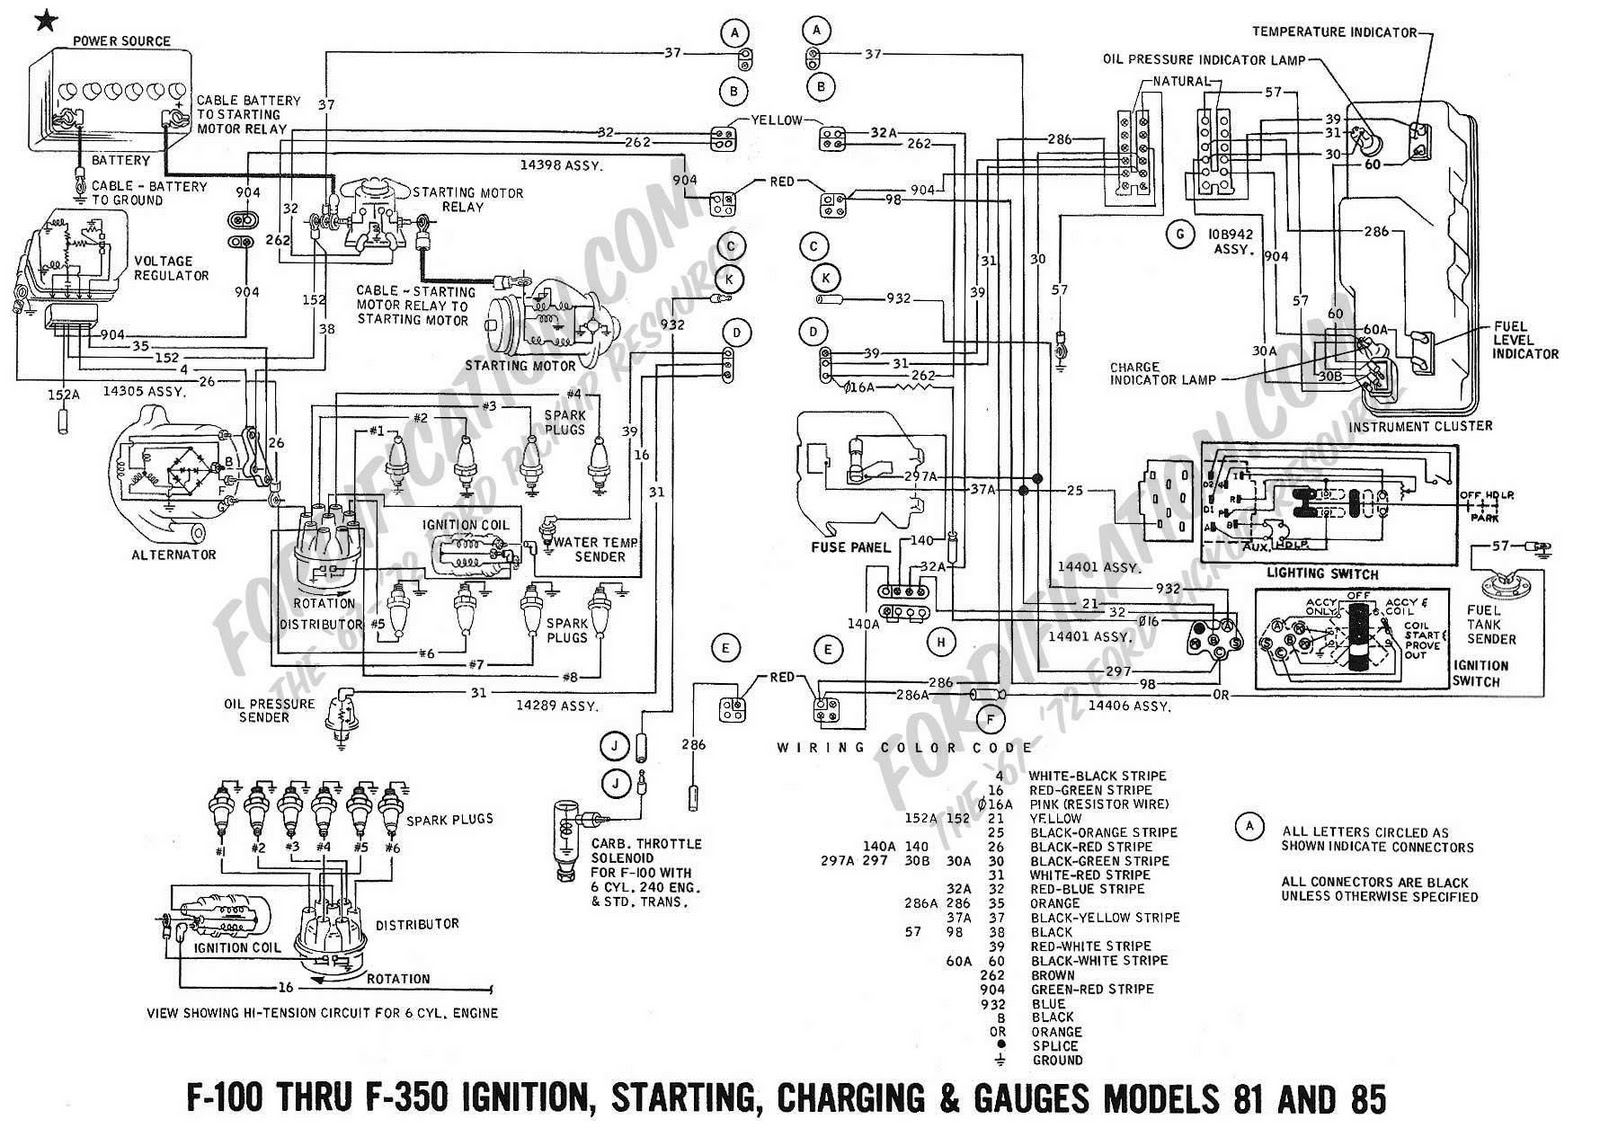 1979 F150 Fuel Gauge Wiring Diagram Archive Of Automotive Sportster Electric Sending Unit For Speedo 1977 Ford Ltd Schematics Rh Thyl Co Uk